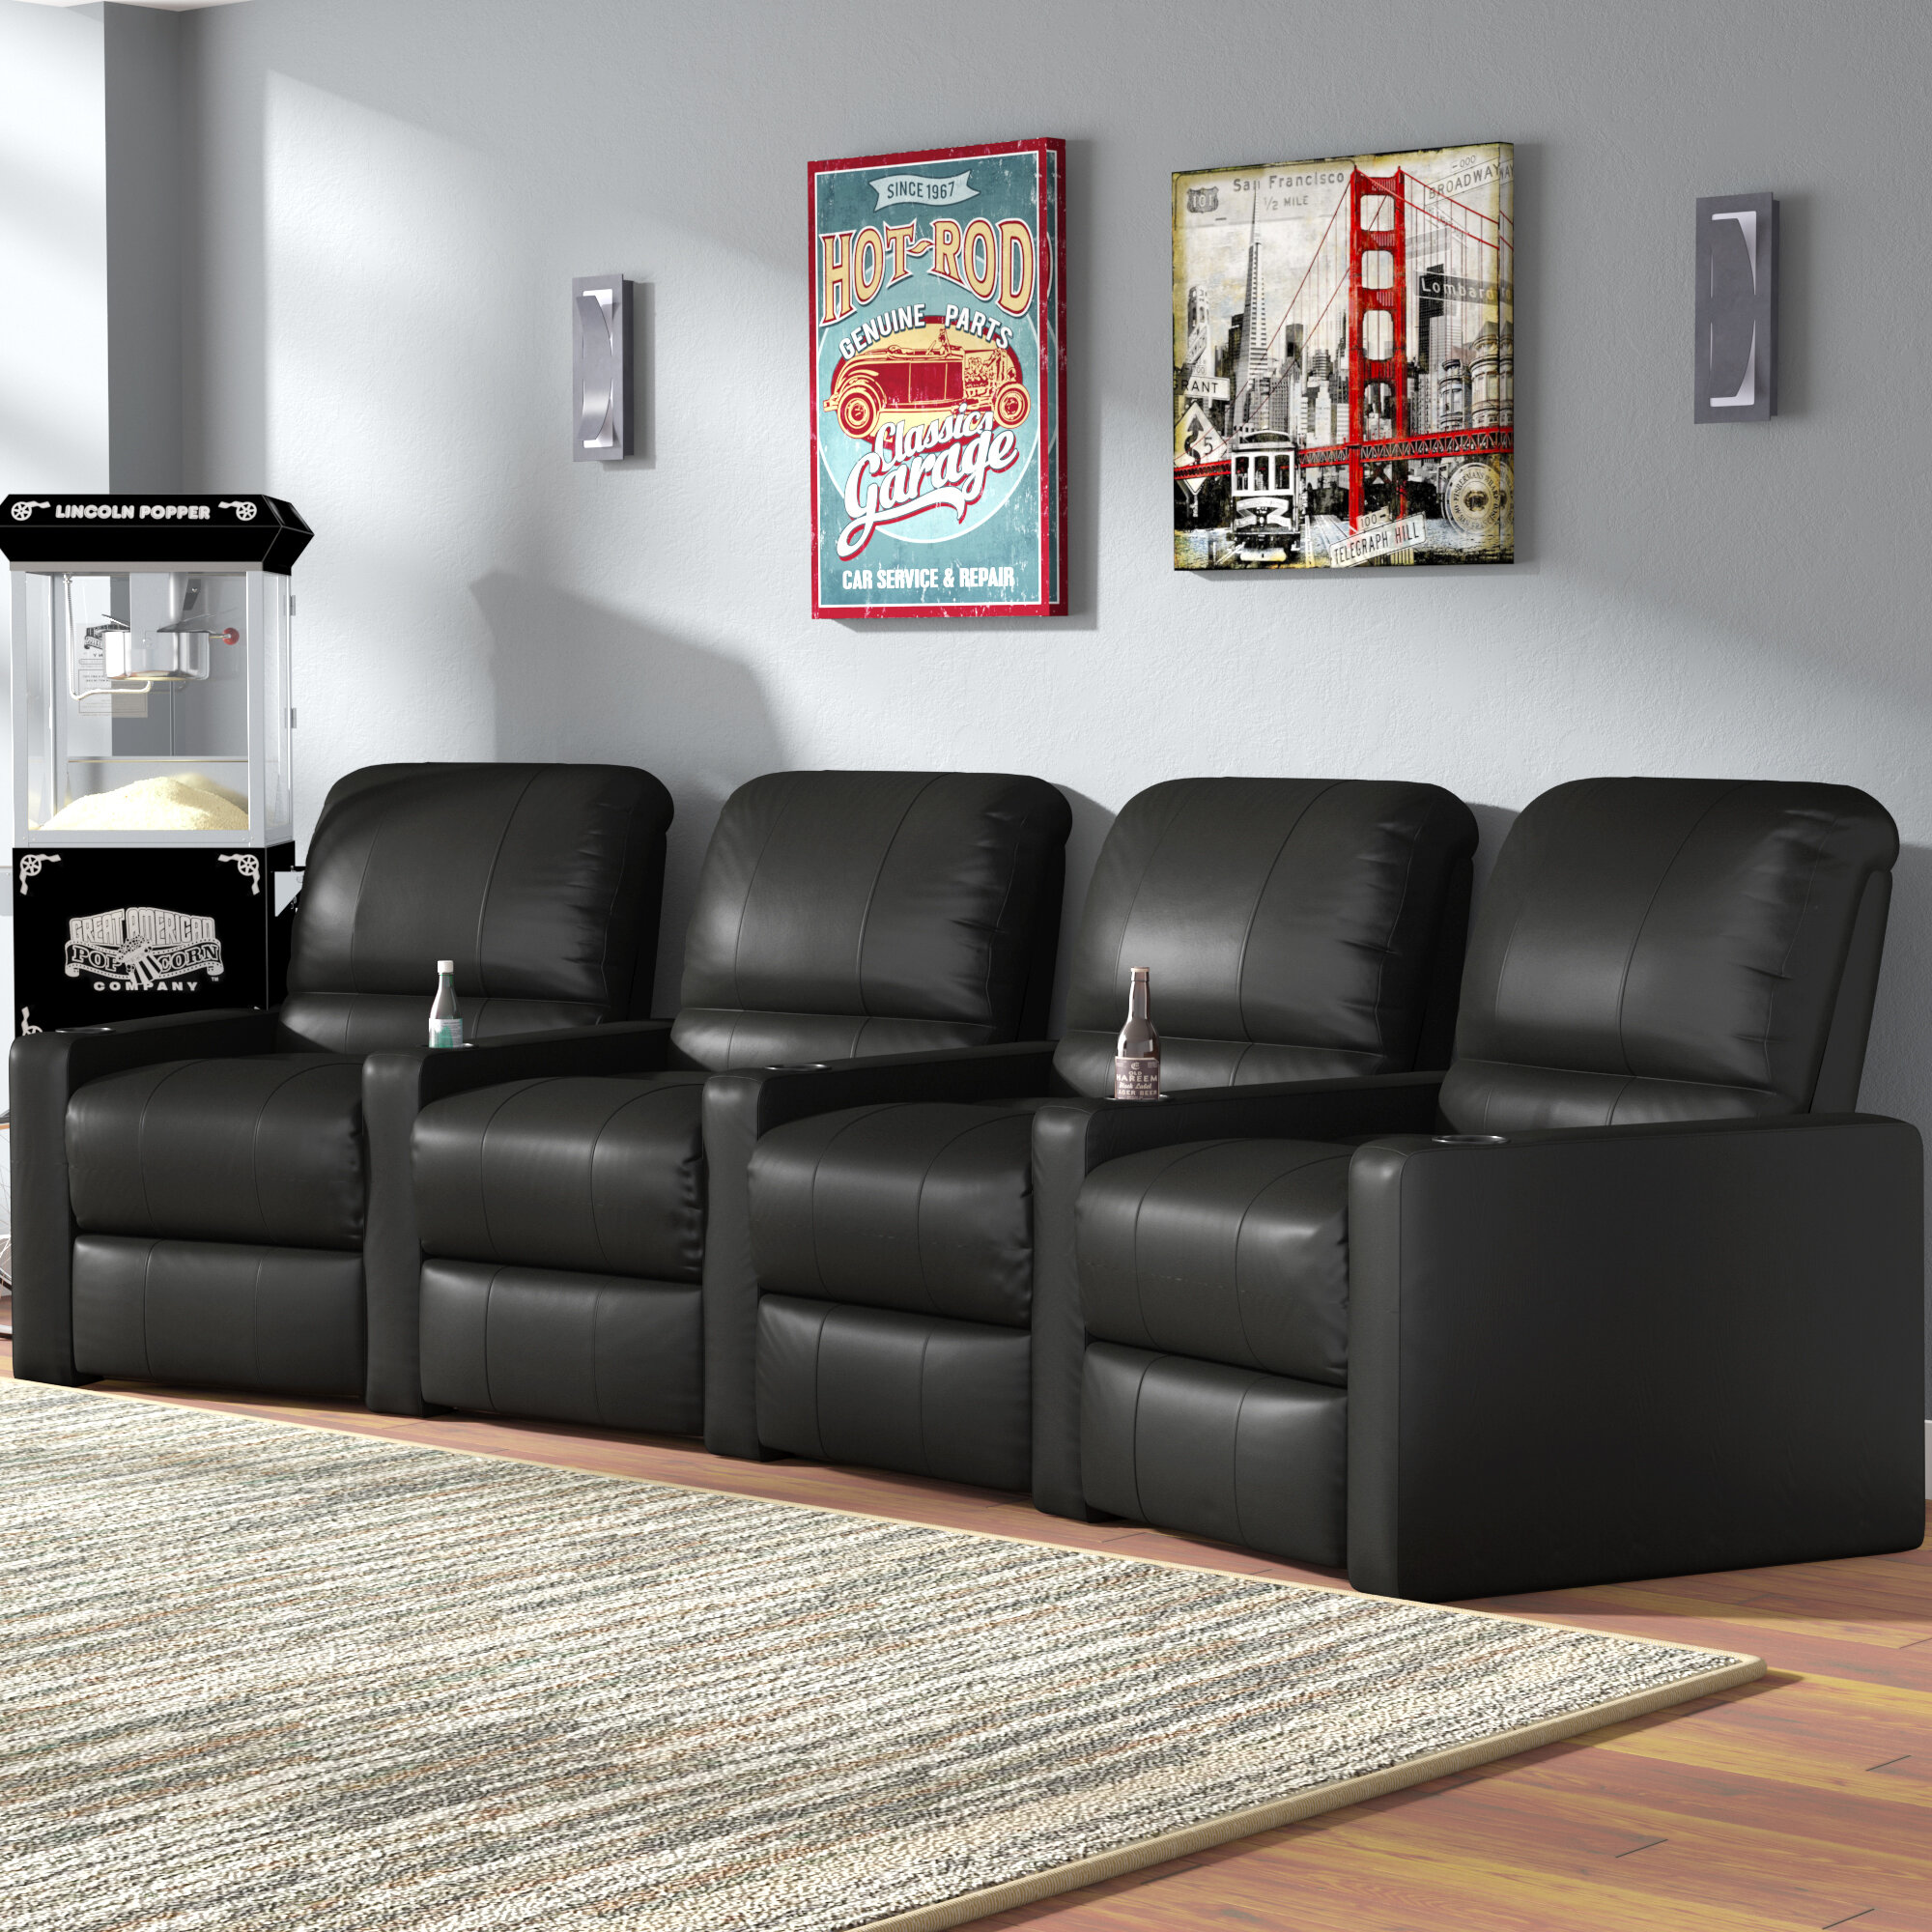 Latitude Run Home Theater Curved Row Seating (Row of 4 ...